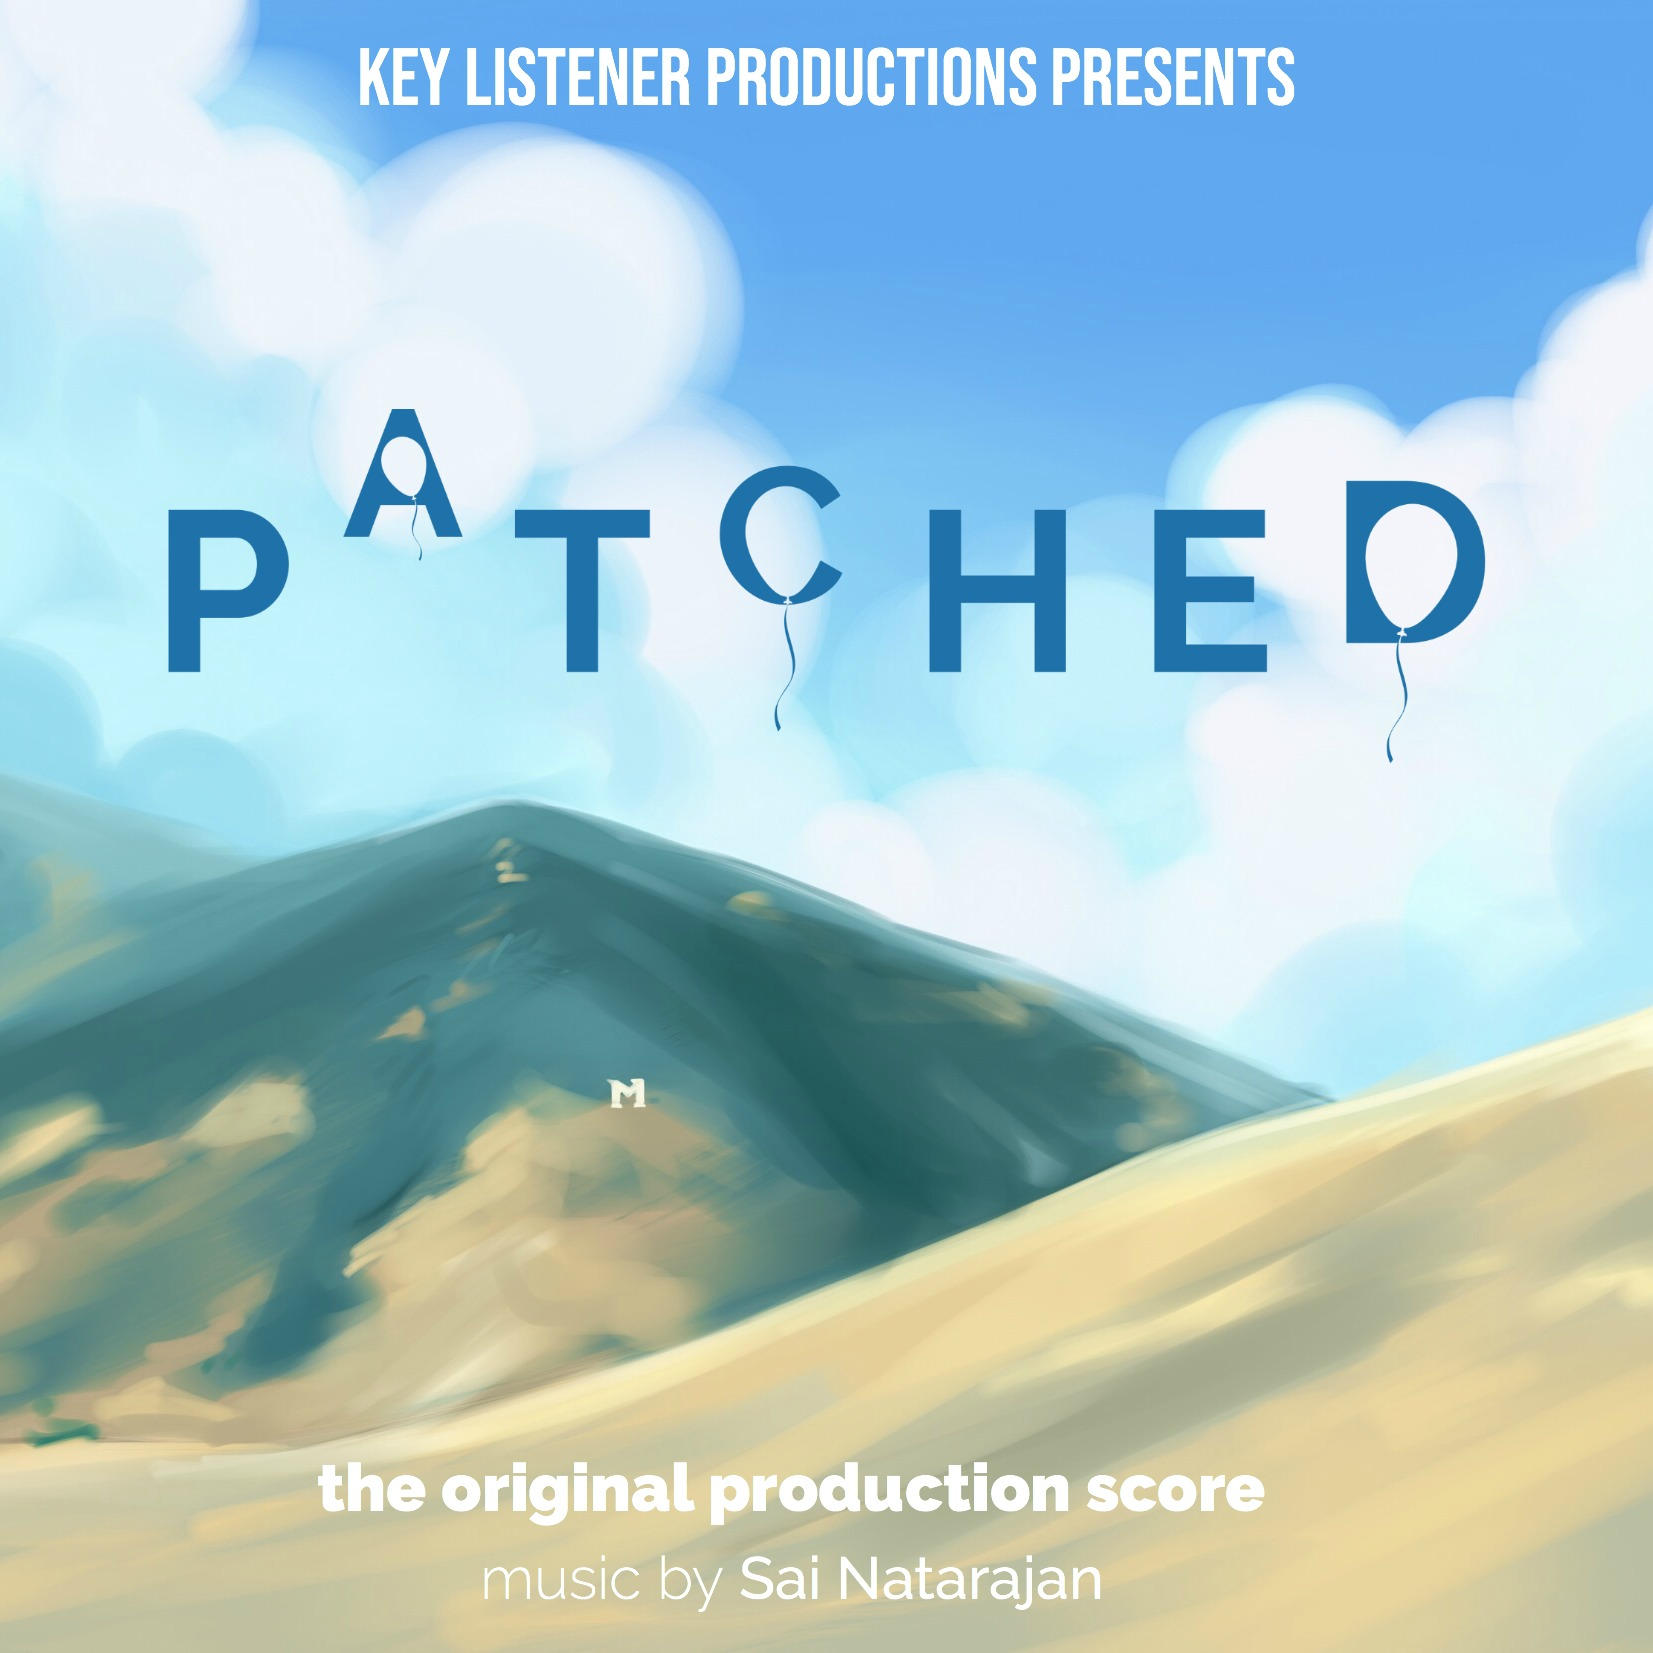 Patched - Original Score Album Art